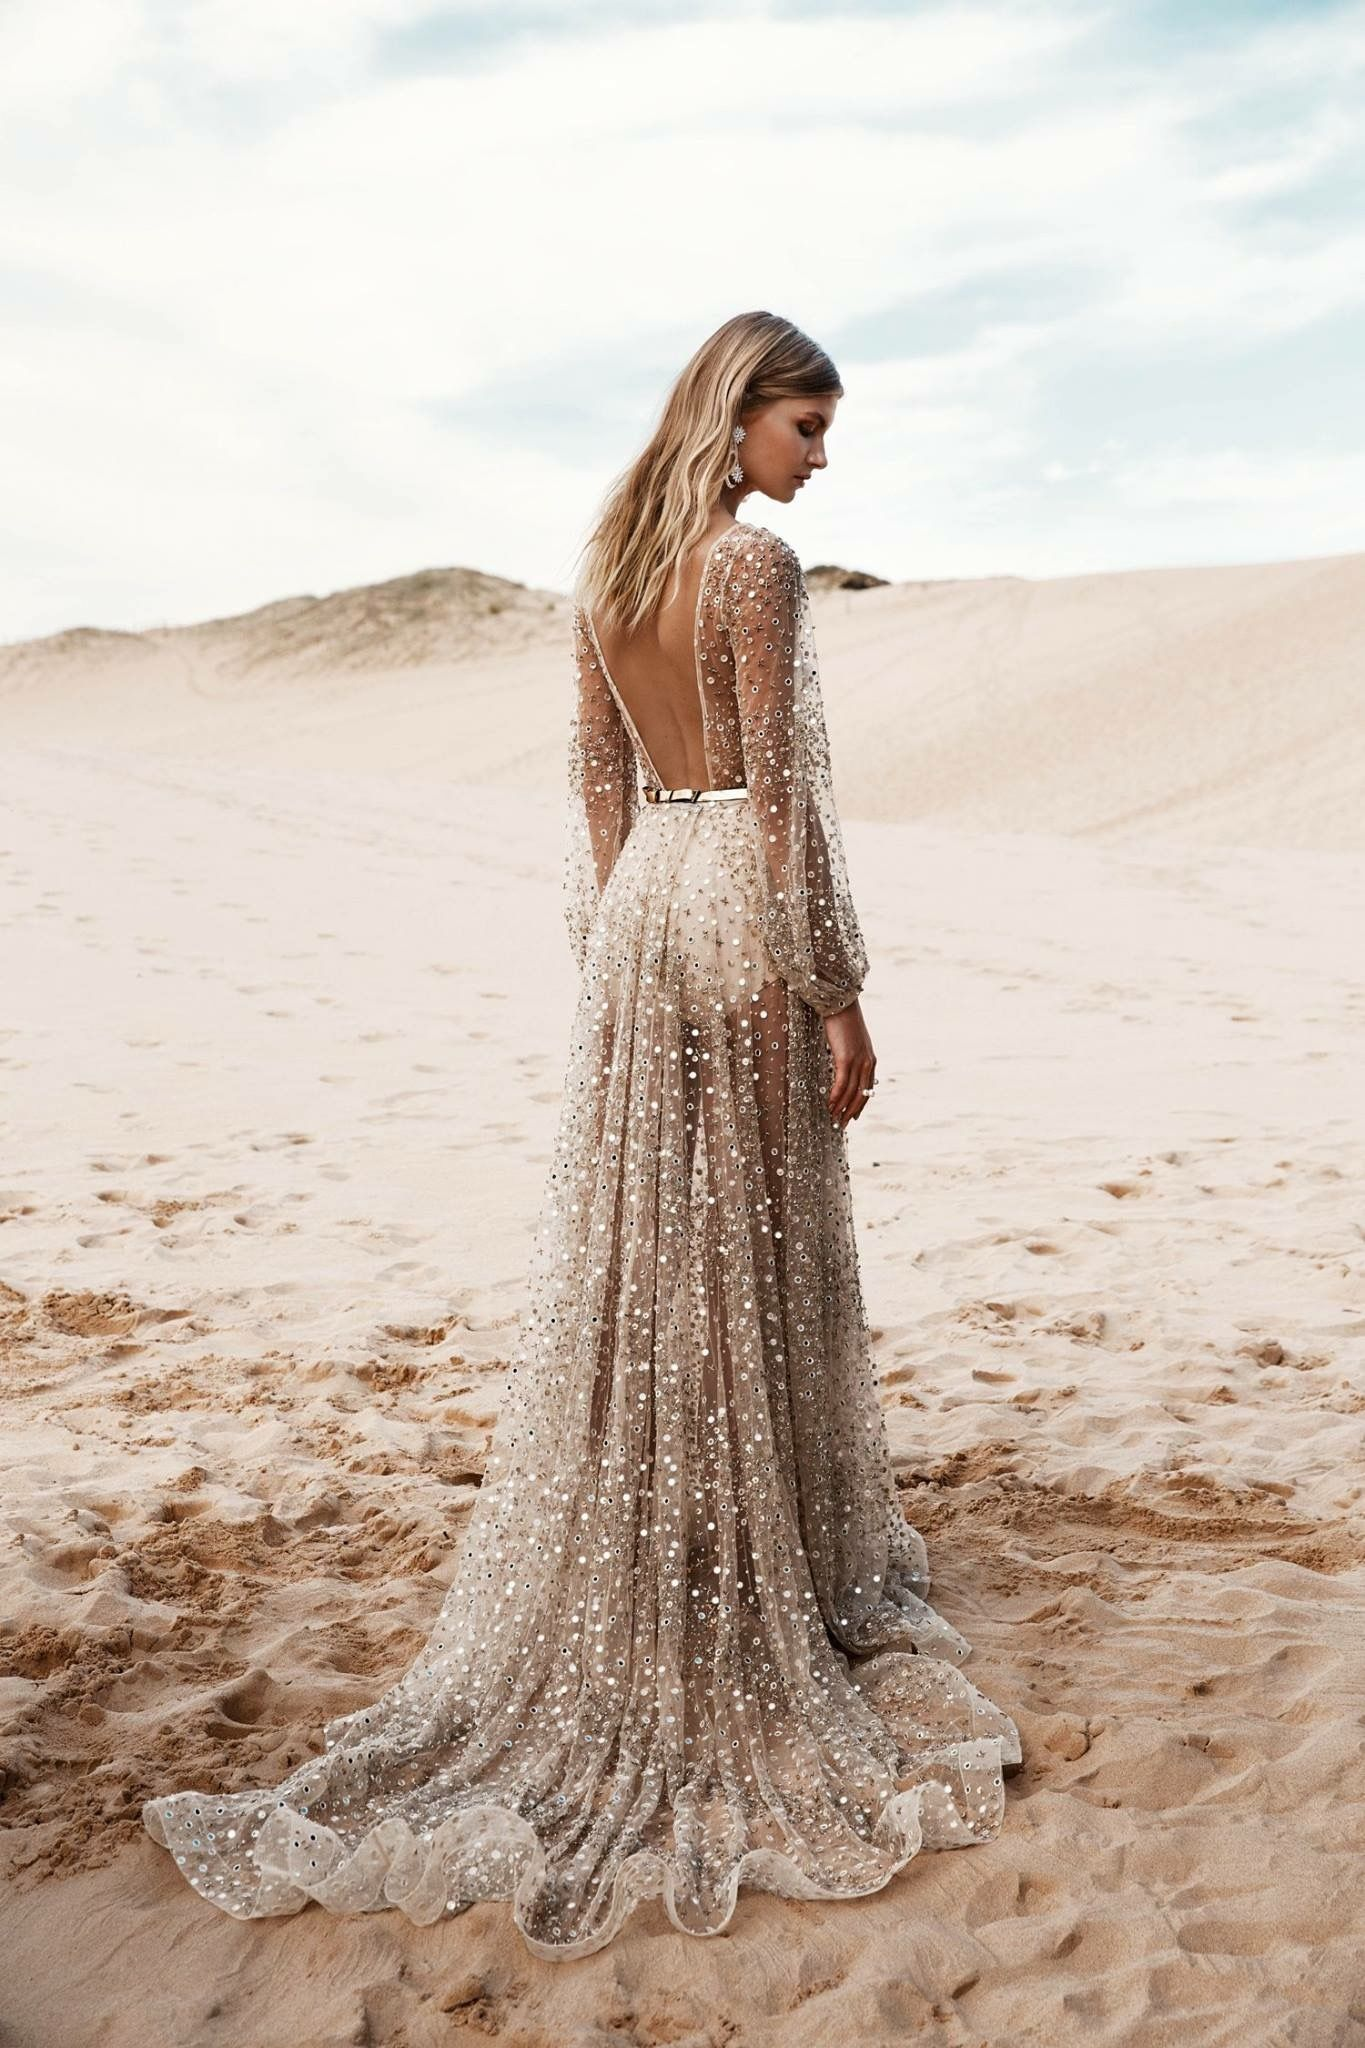 Pin by michelle fater on gorgeous dresses in pinterest